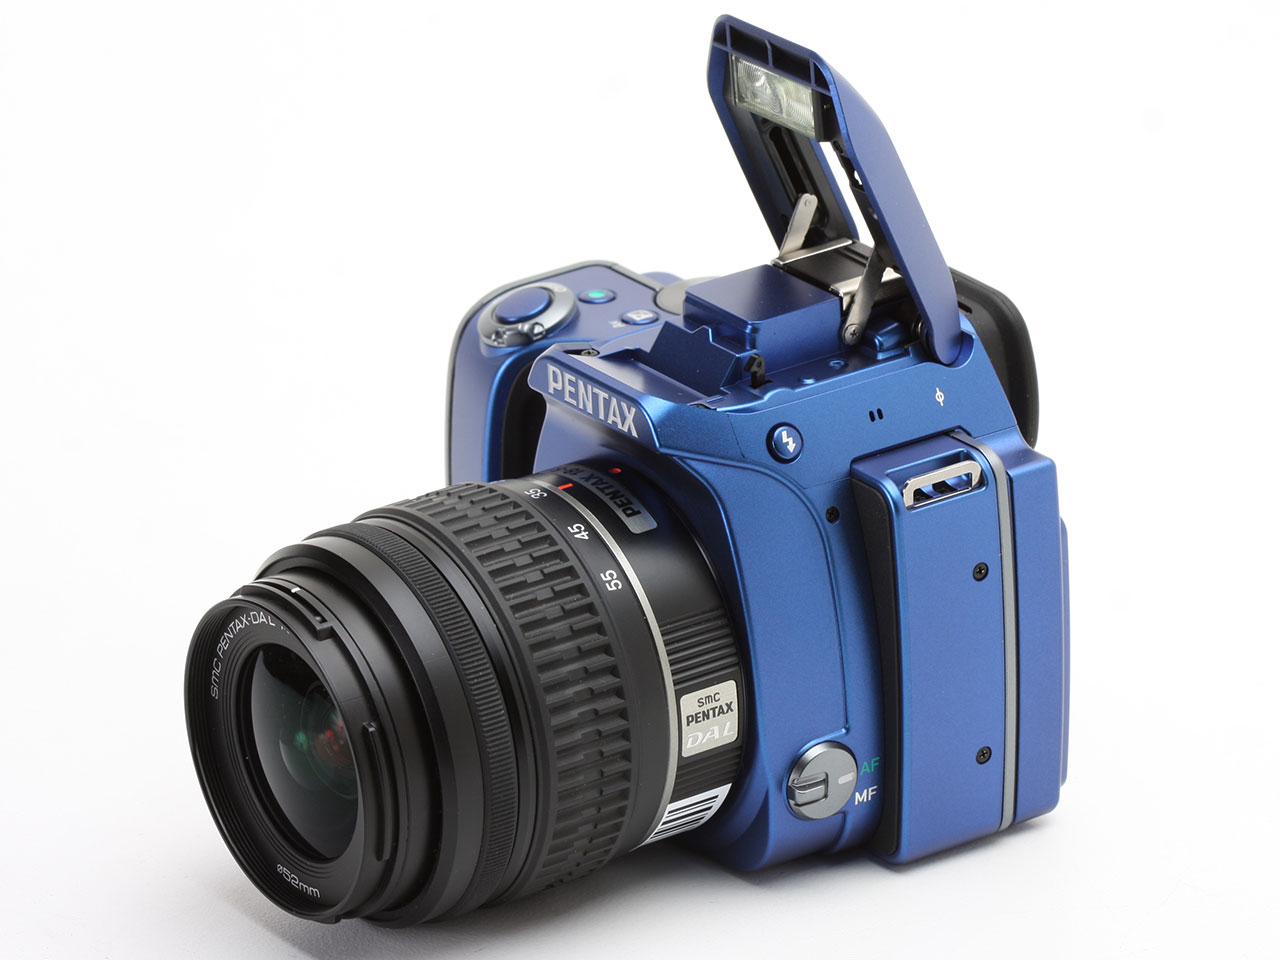 Hands On With The Pentax K S1 Digital Photography Review Canon Eos 1300d Lensa 18 55 Iii Wifi Kamera Dslr Kit